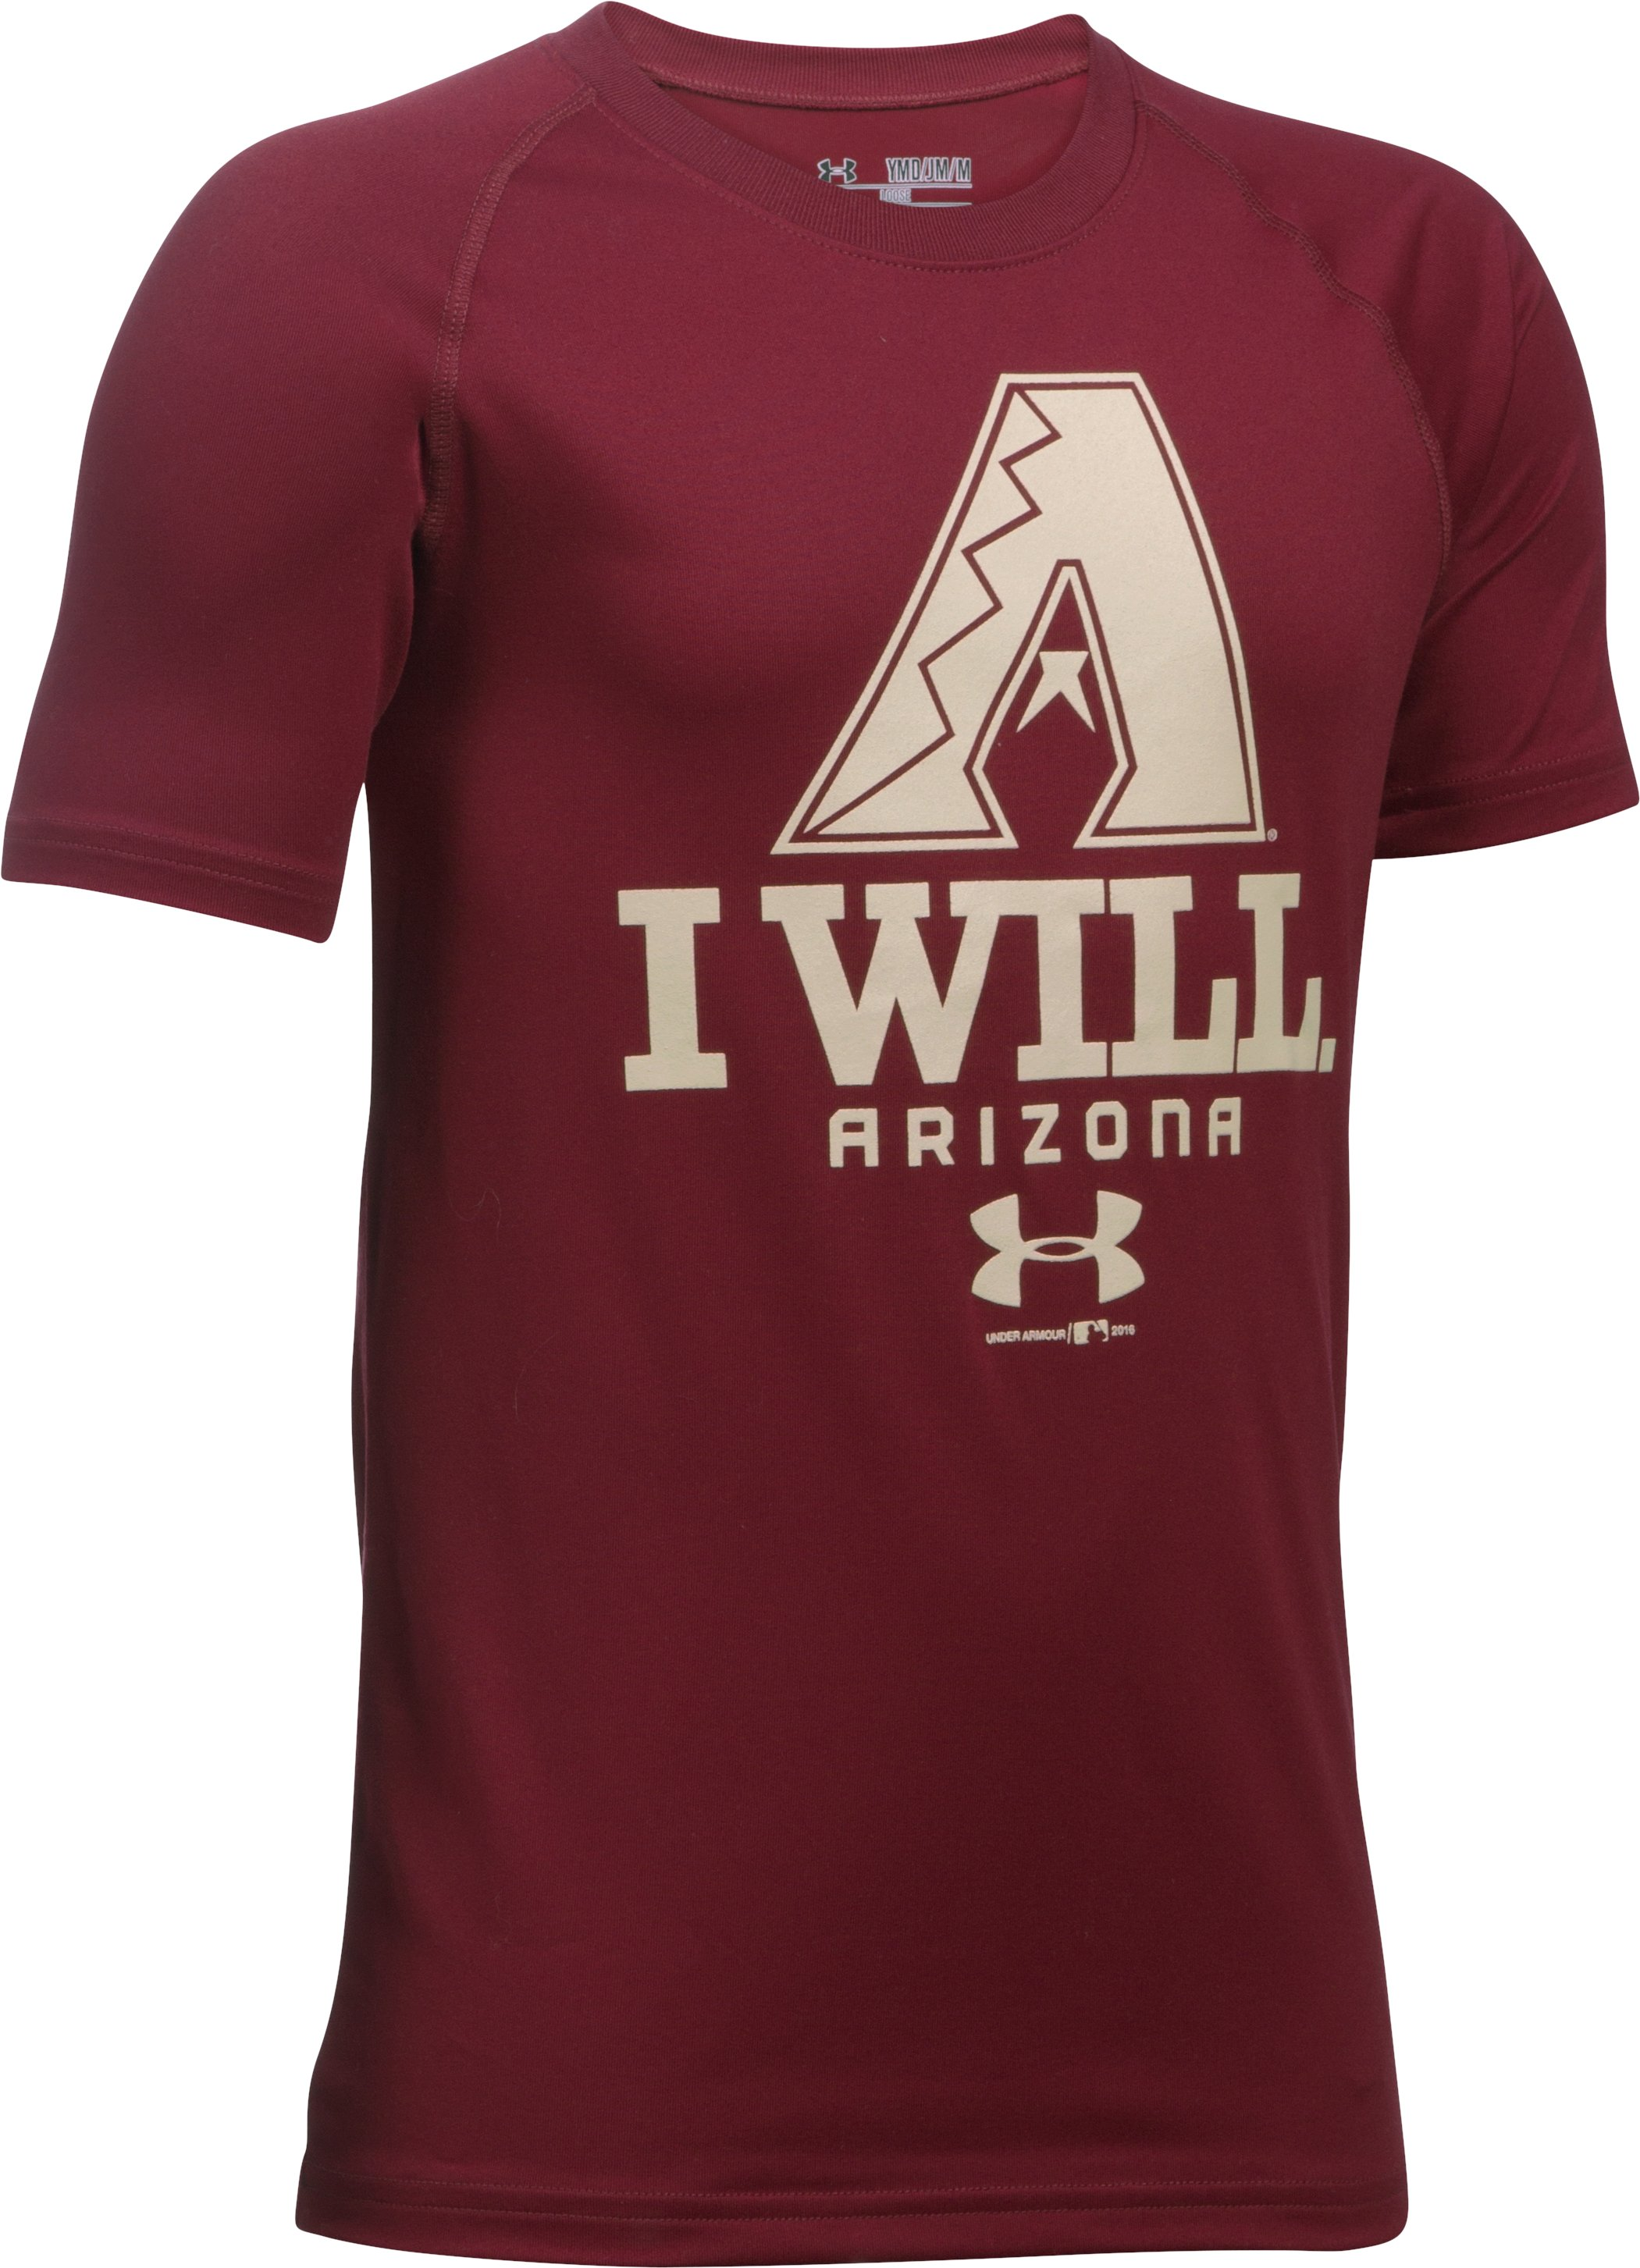 Boys' Arizona Diamondbacks I Will UA Tech™ T-Shirt, Cardinal